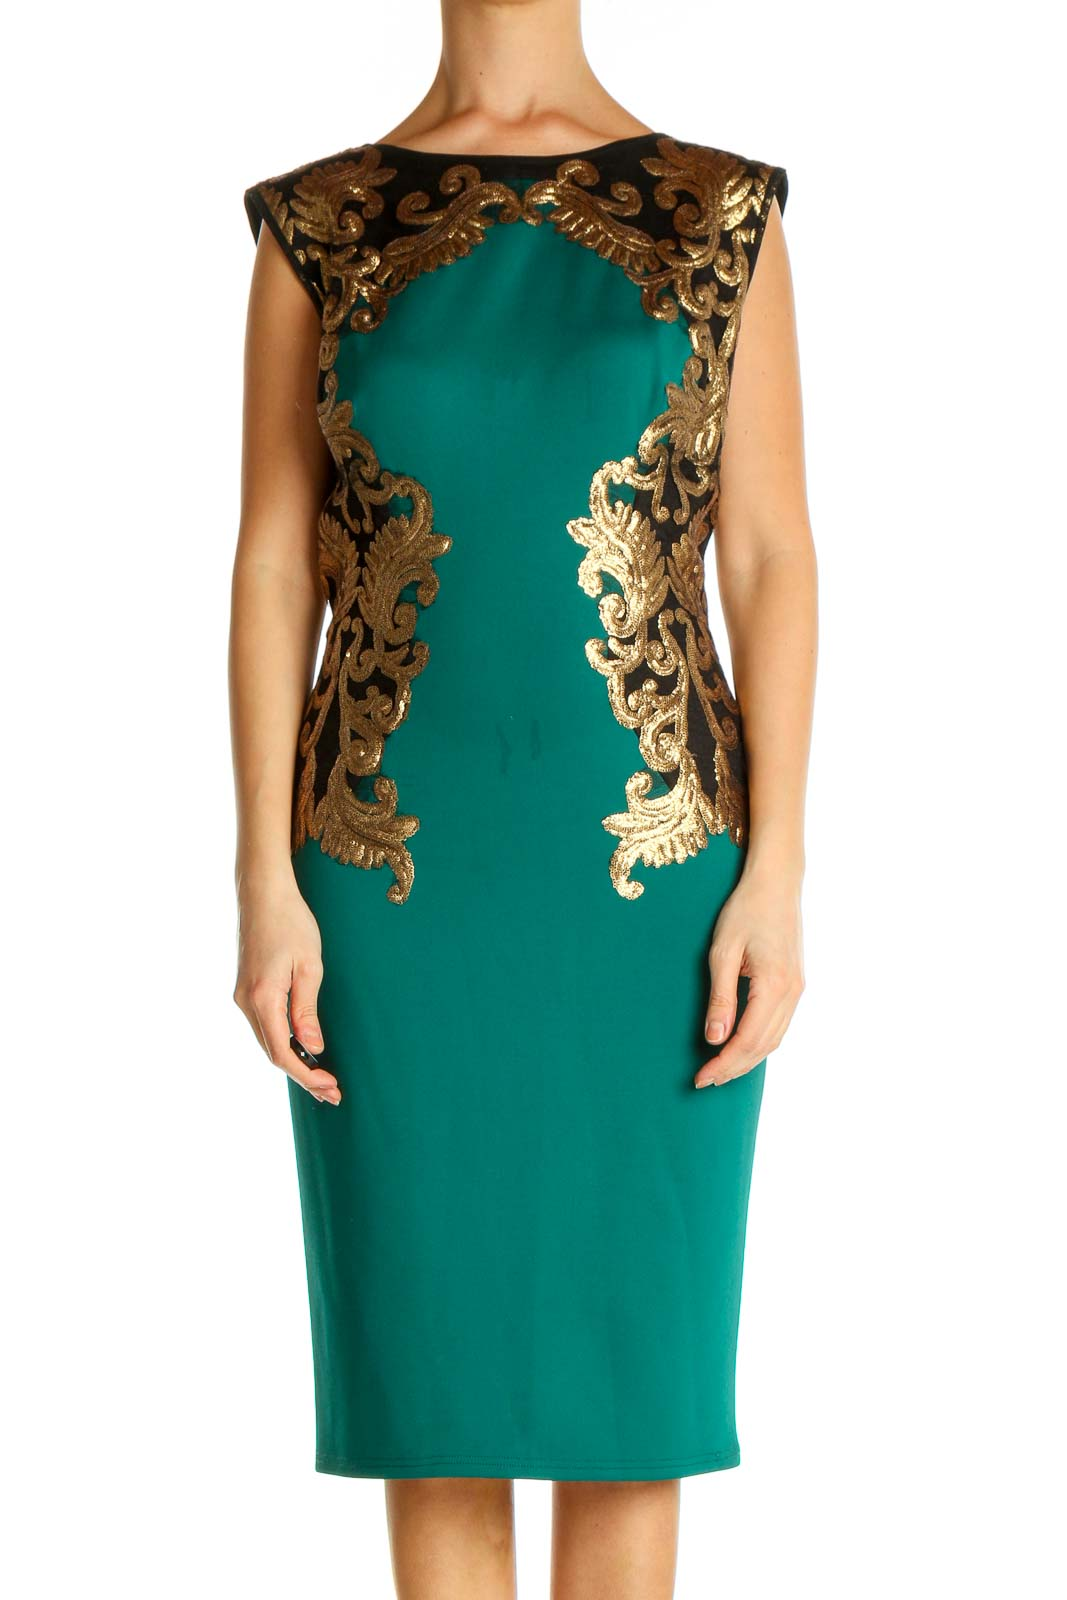 Green Cocktail Sheath Dress Front